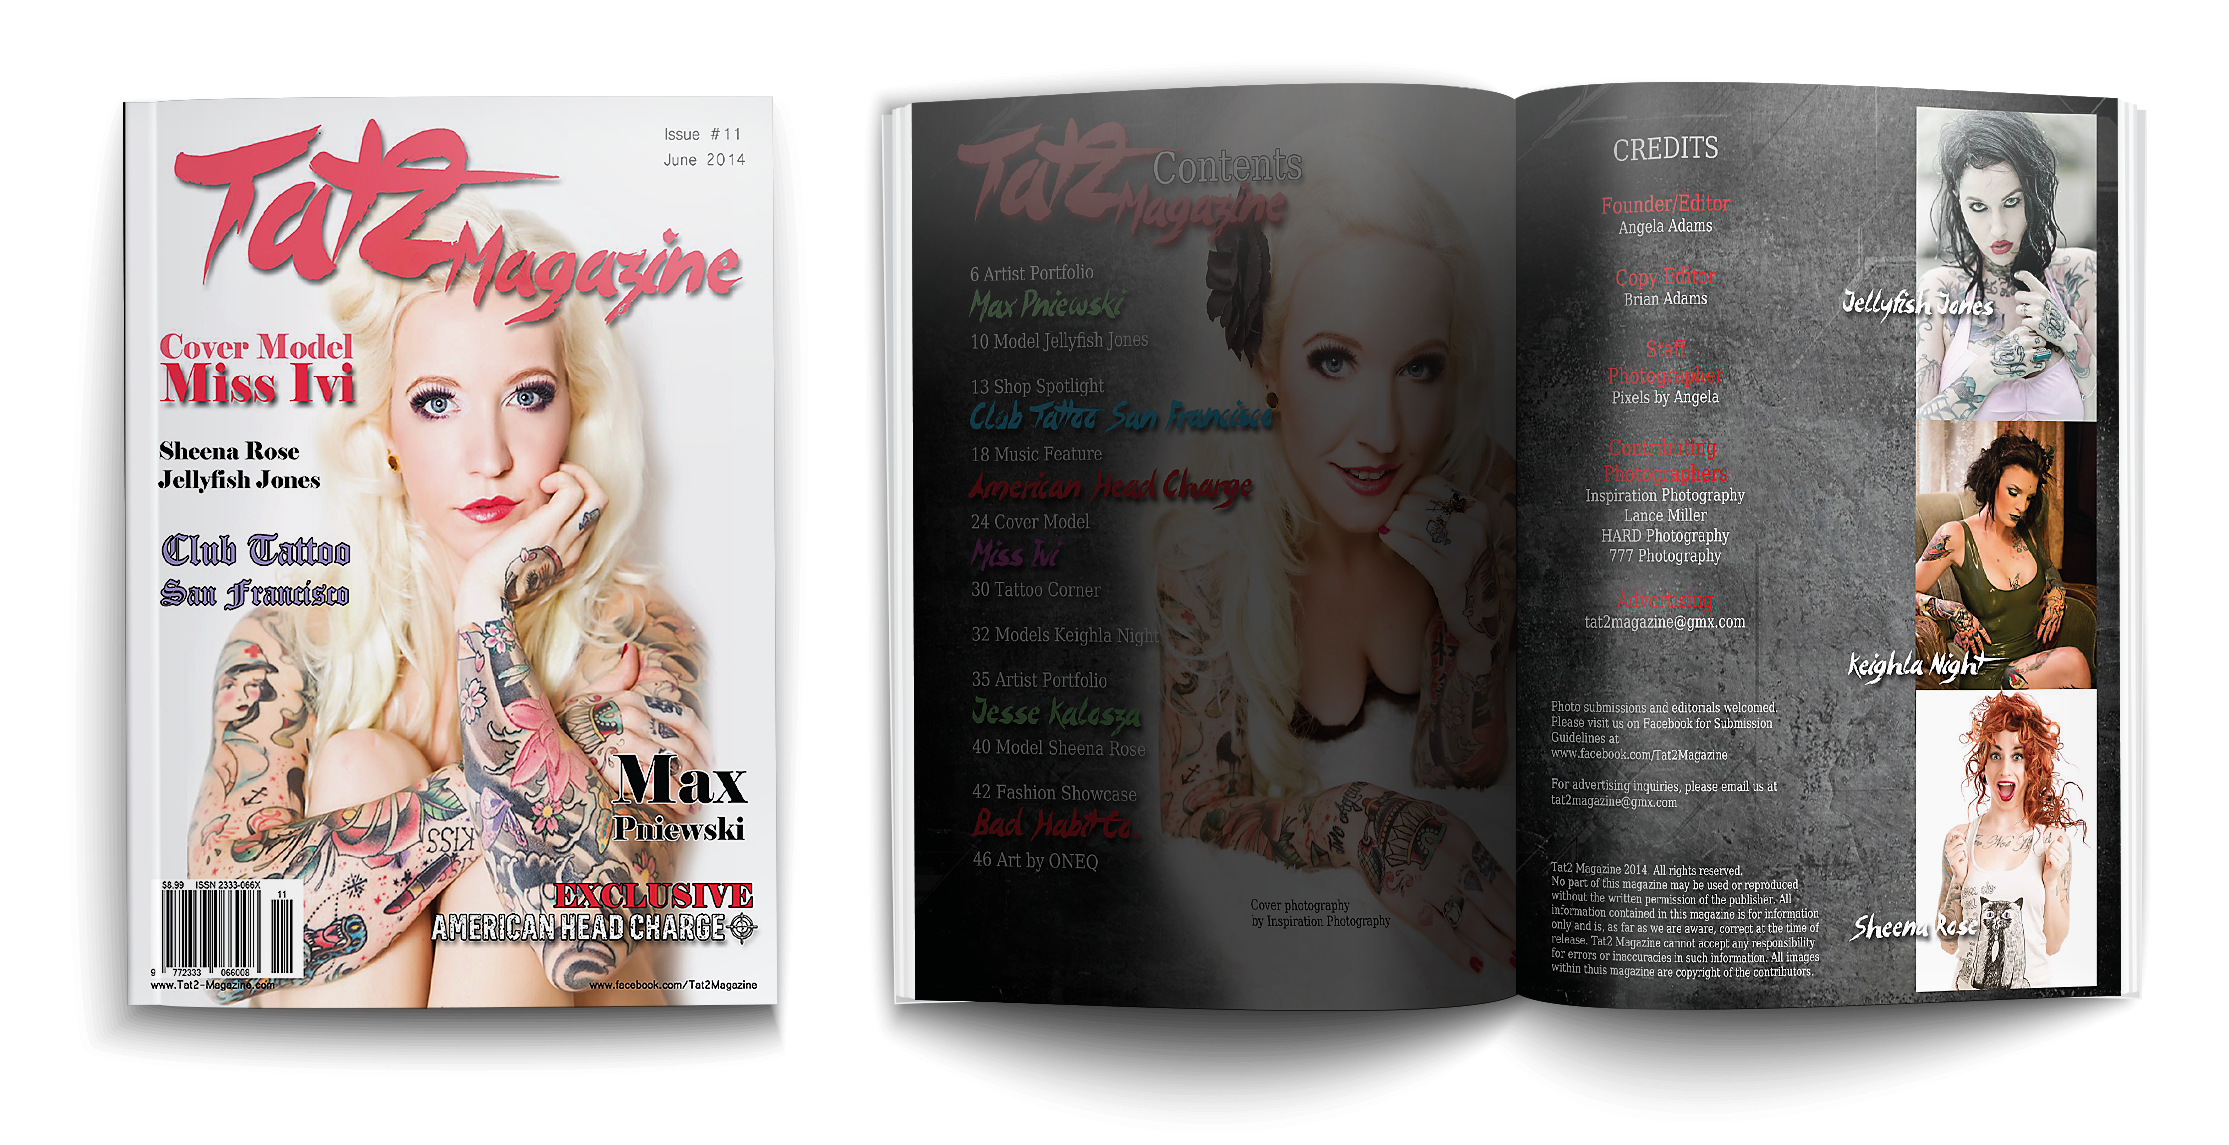 tat2_magazine_issue_11_june_2014_render1.png